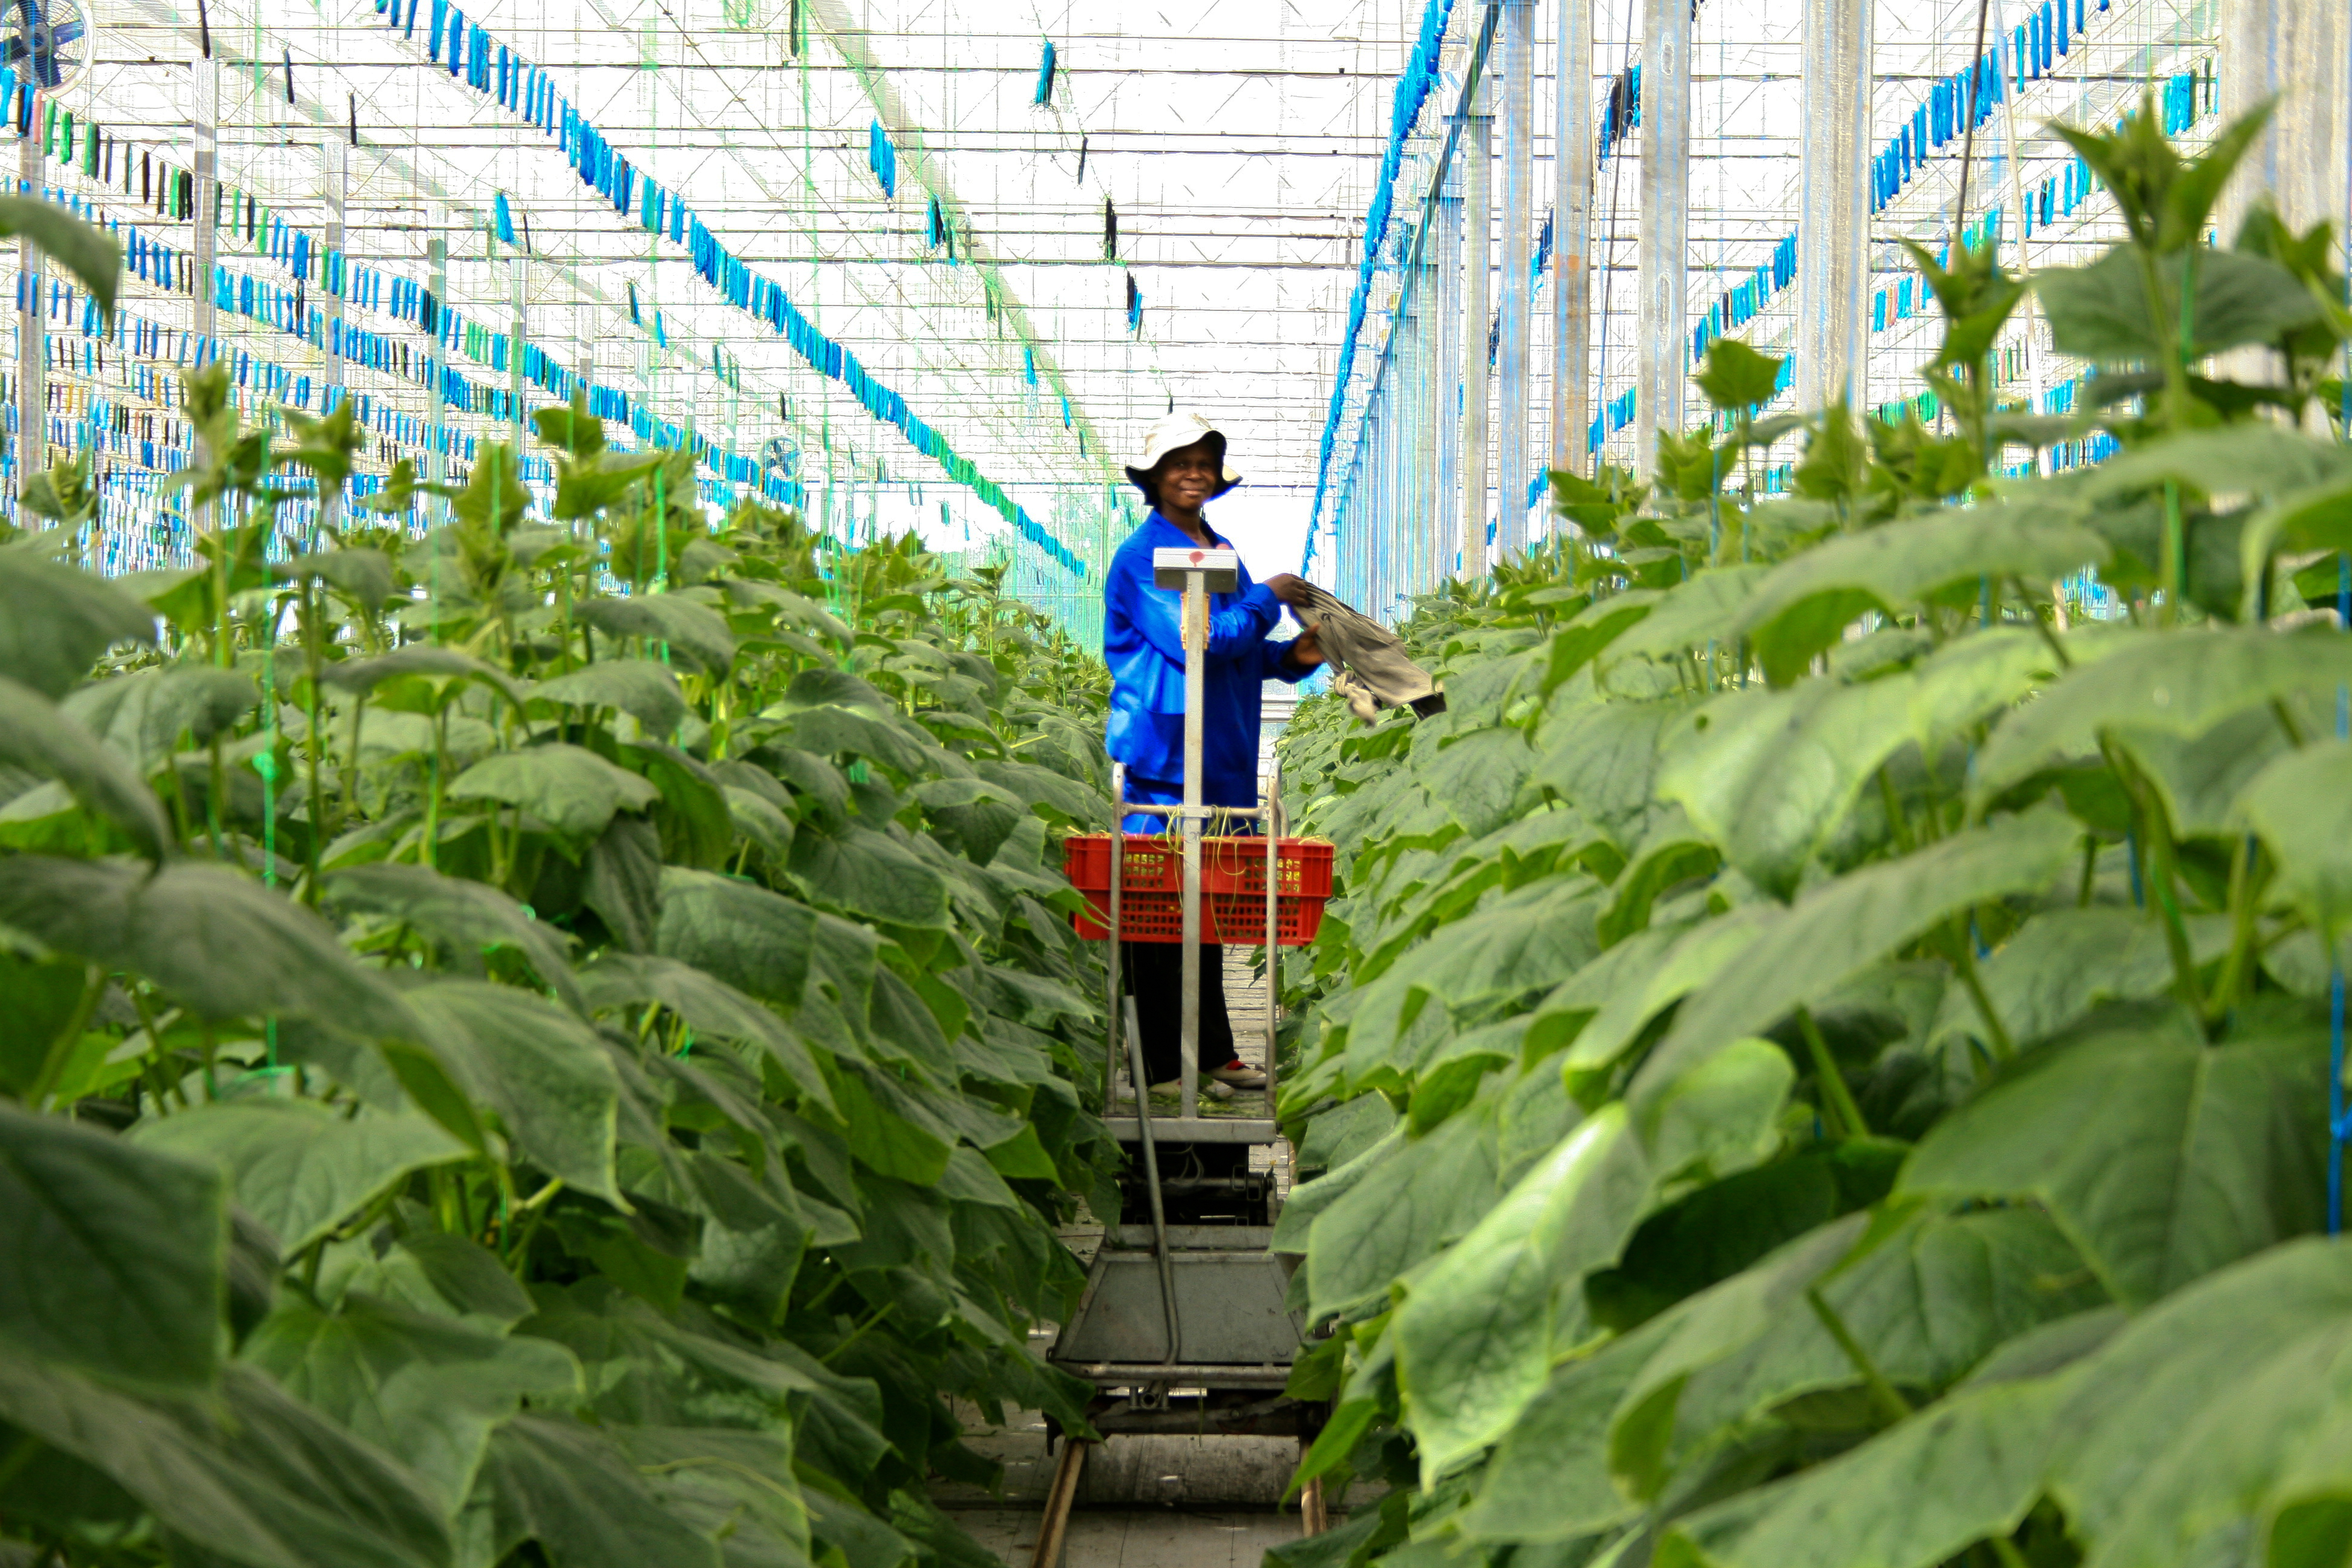 Durban, South Africa - 15 August, 2012 - a woman works picking cucumbers in a farm greenhouse.